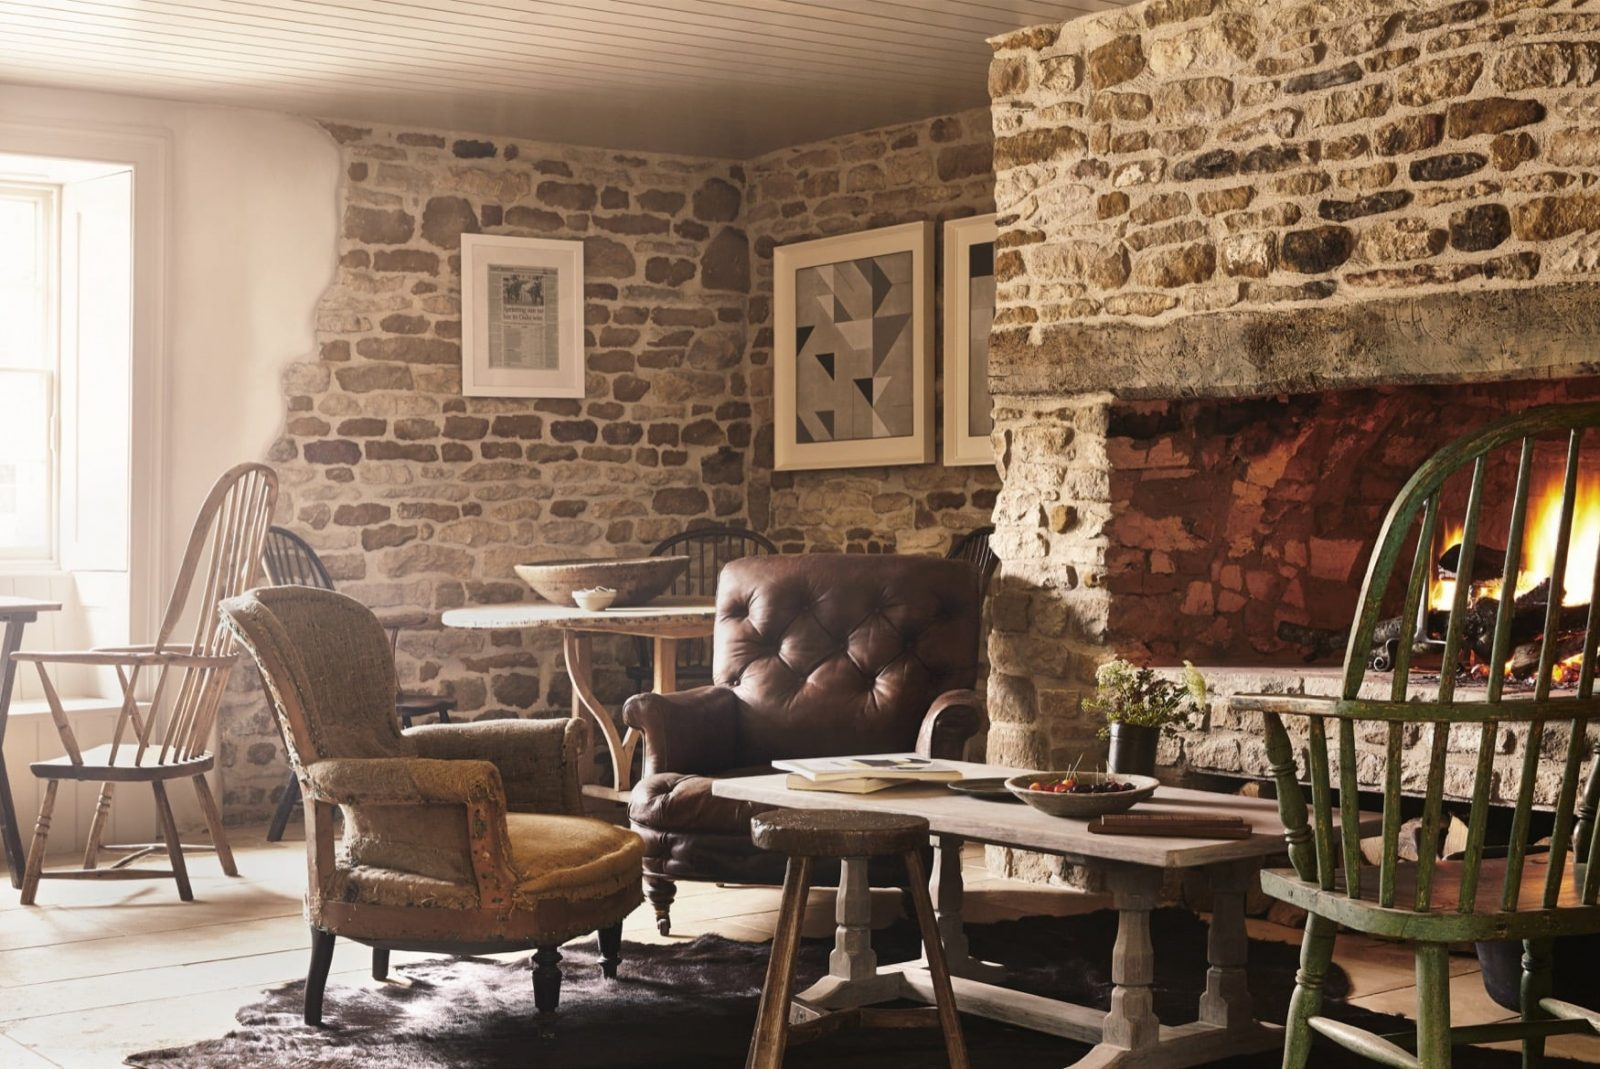 The Wild Rabbit, Kingham Pub with Rooms in Oxfordshire 03